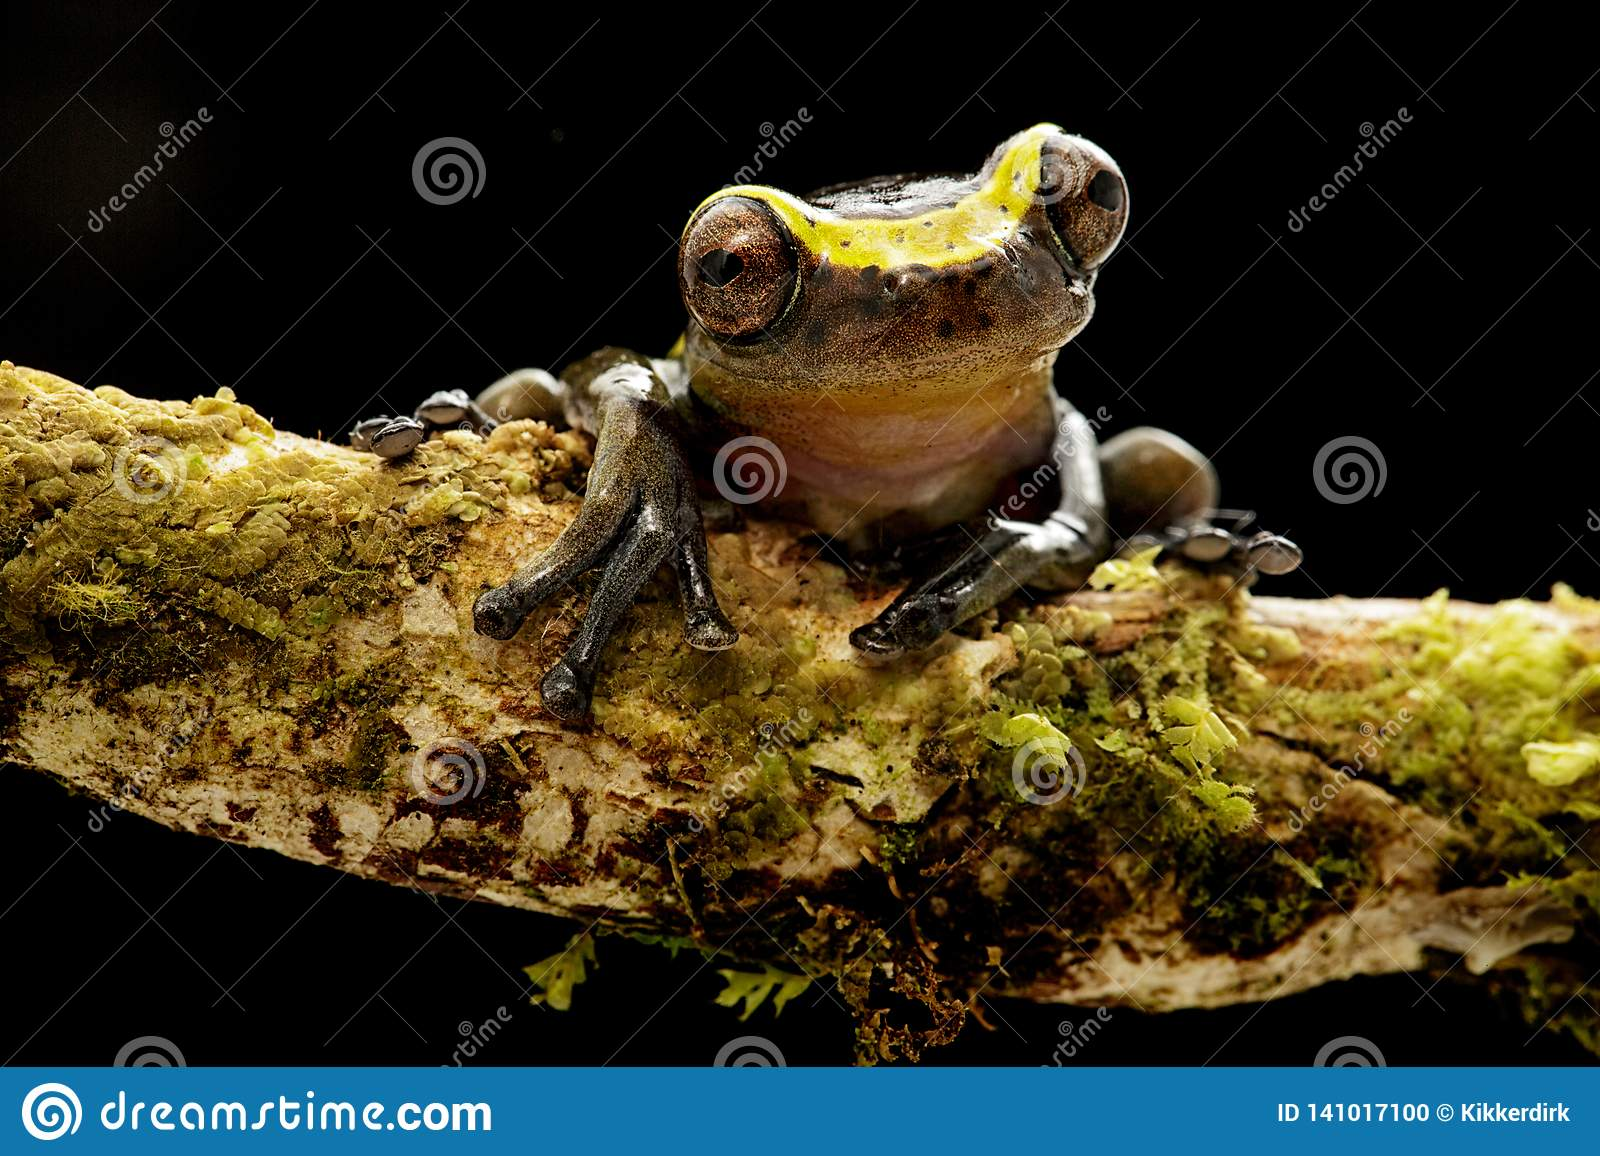 Funny curious tree frog dendropsophus manonegra a small treefrog